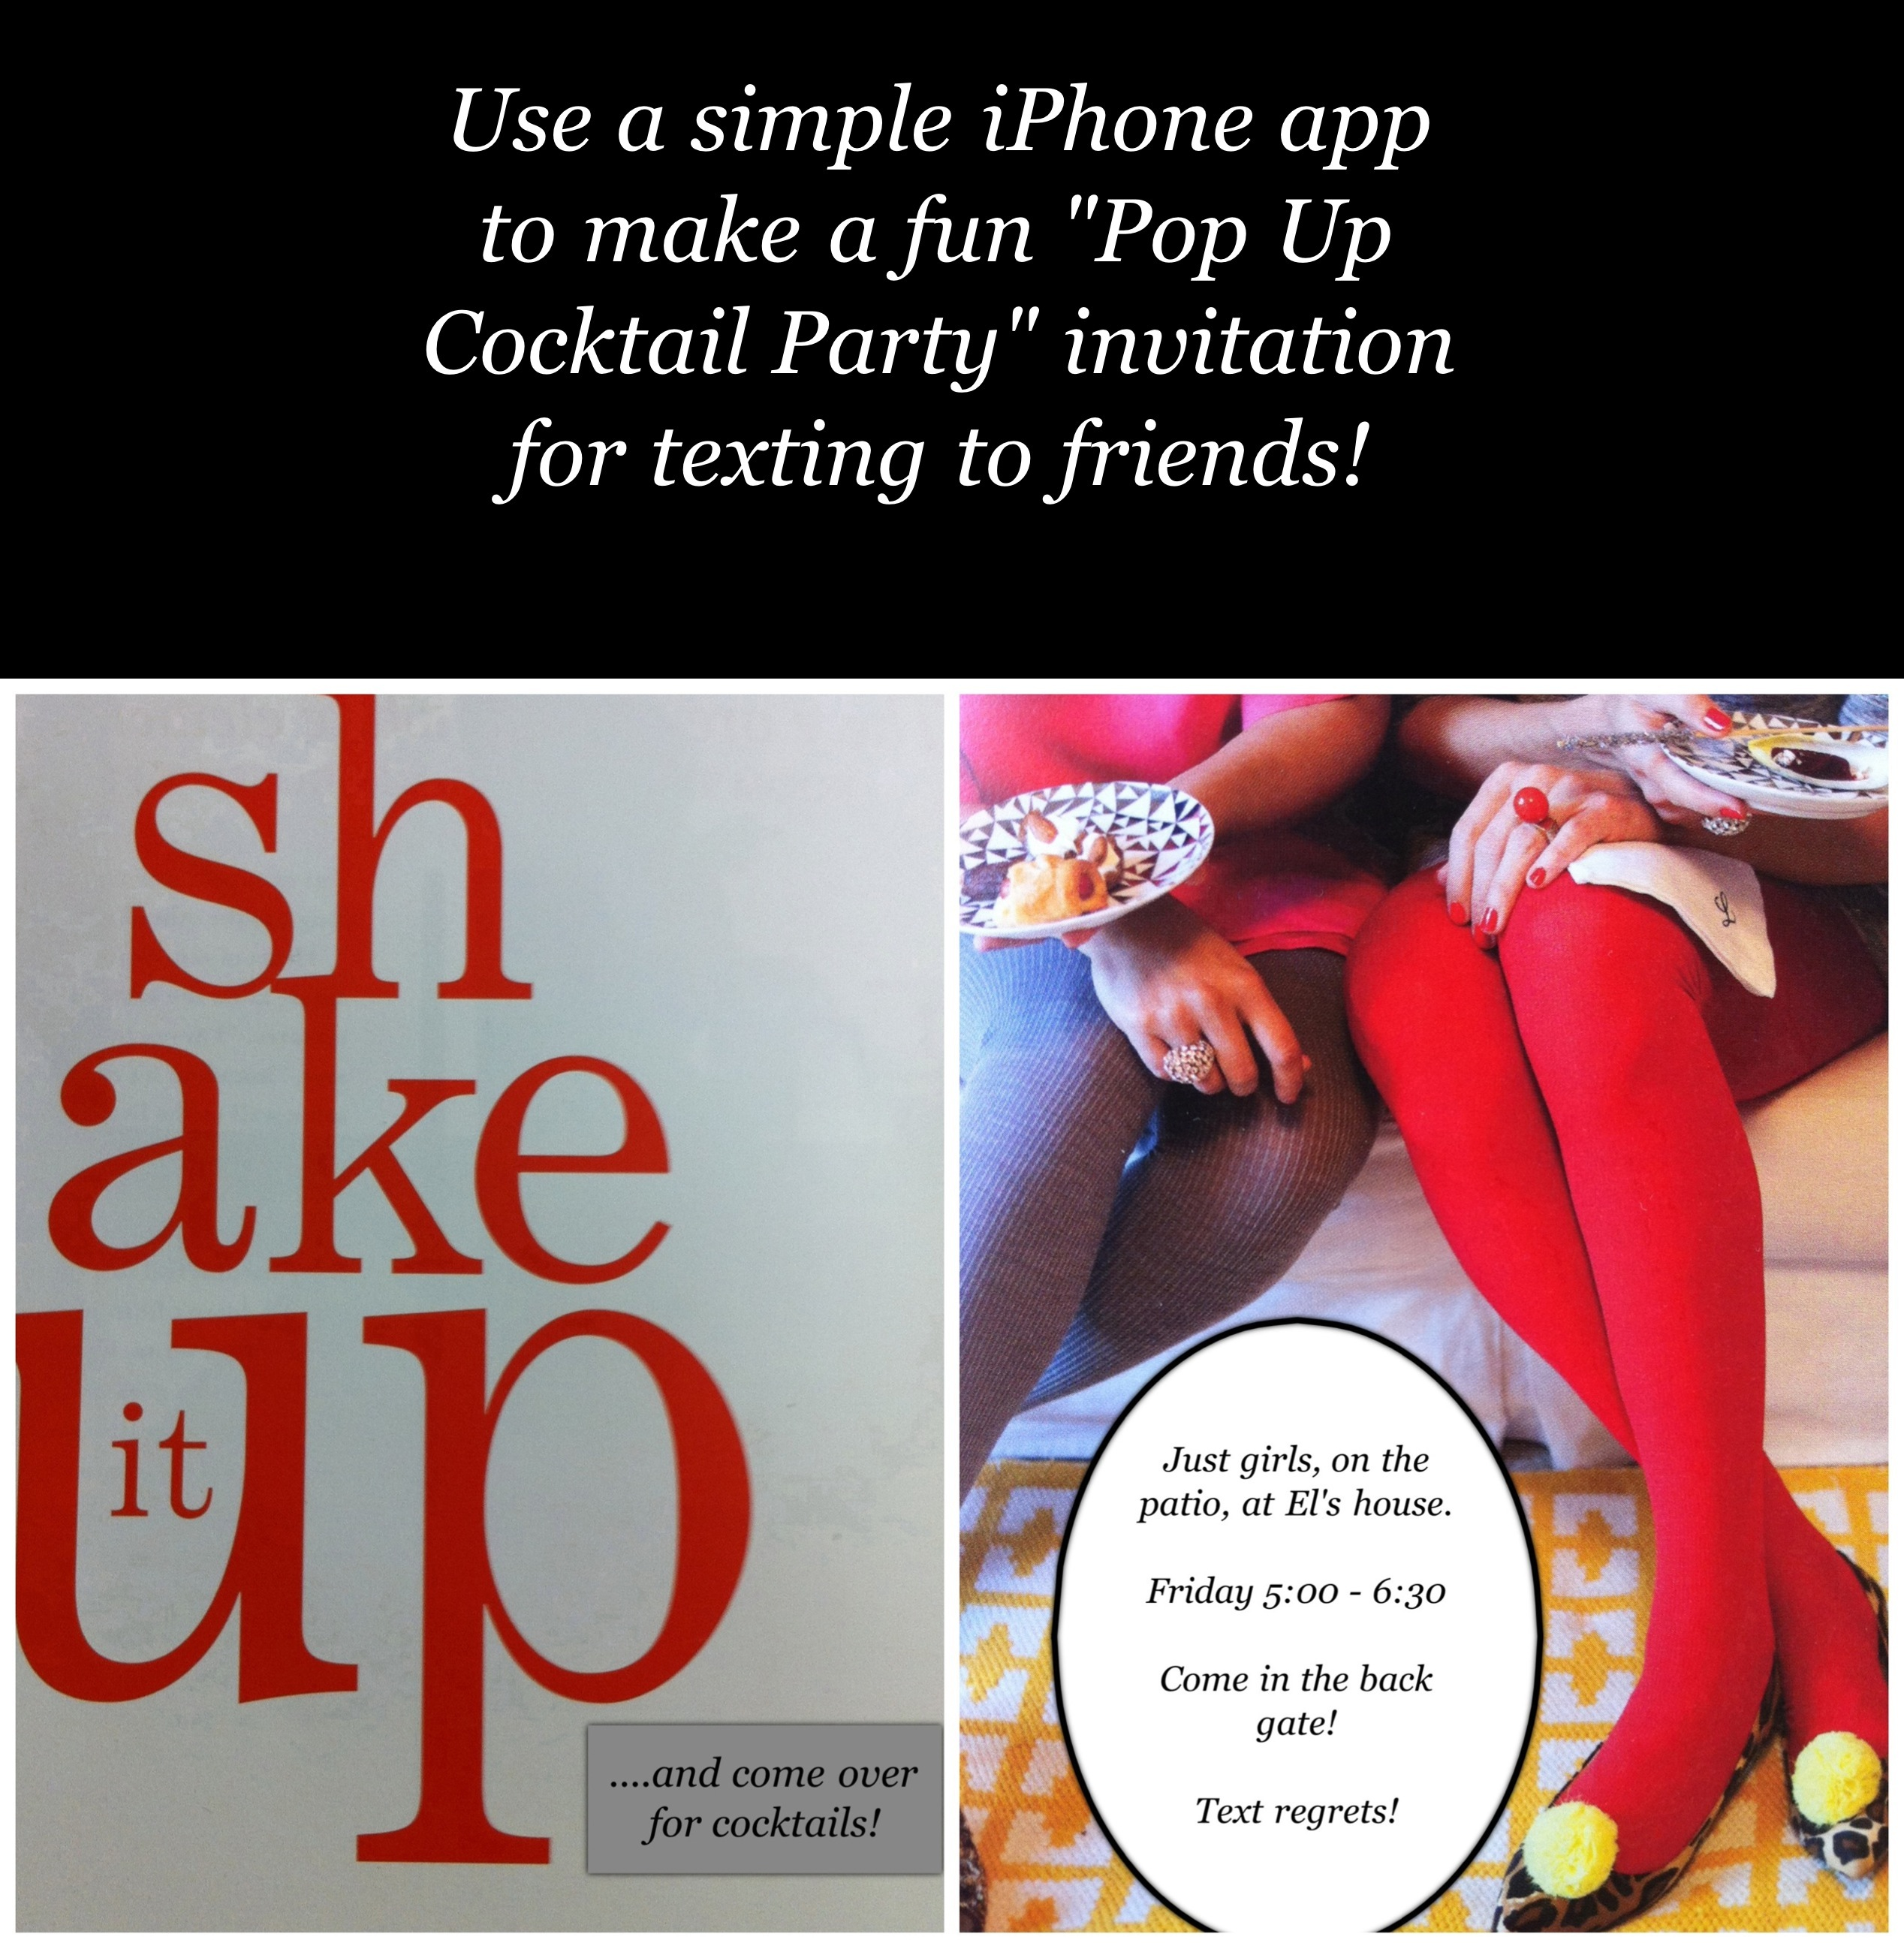 Design a Cocktail Party Invitation to text to your friends – Party Invitation App